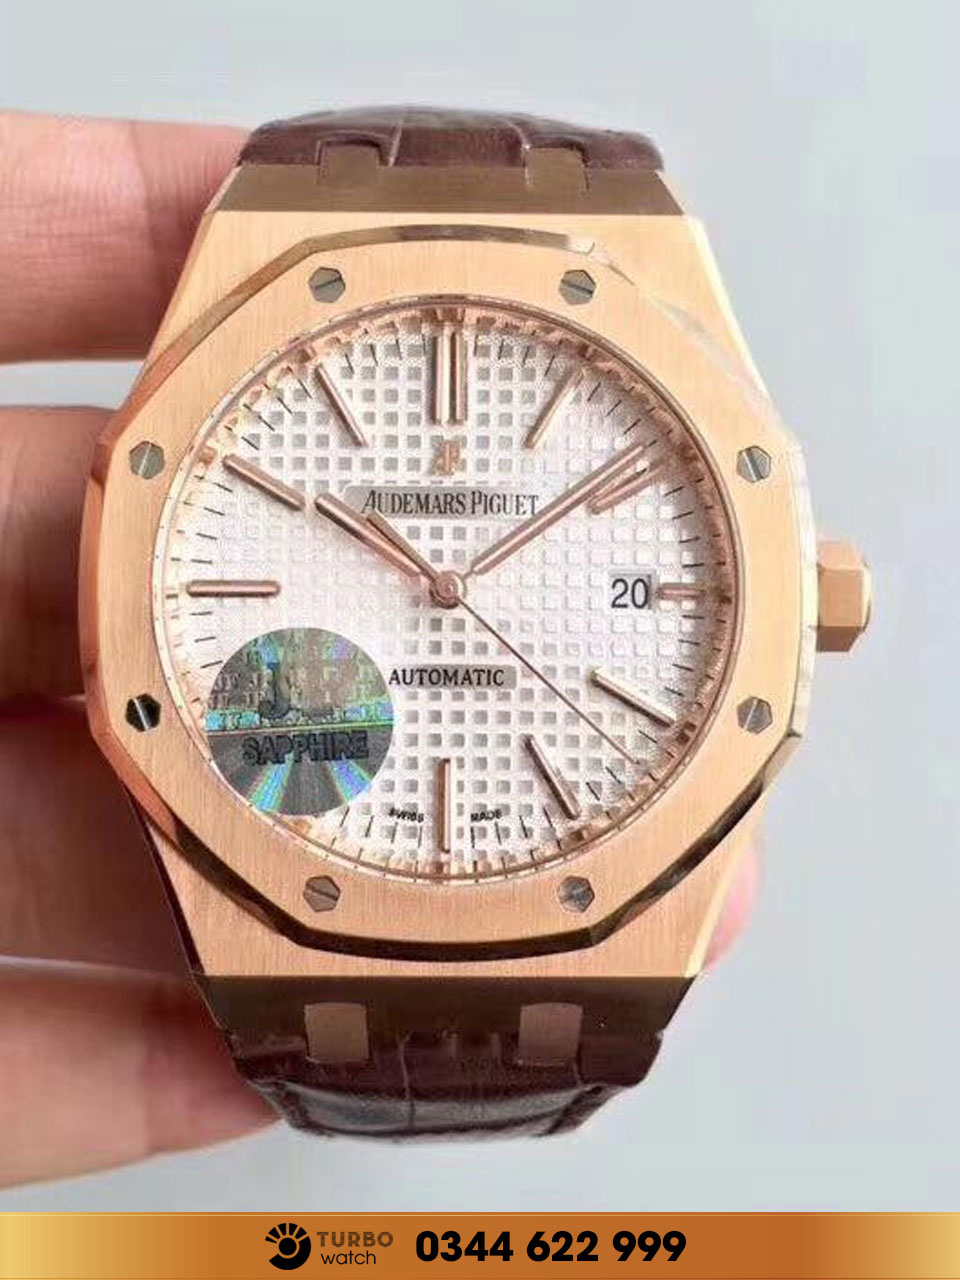 Audemas piguet  Royal Oak Selfwinding dây da  white face replica 1-1 cao cấp